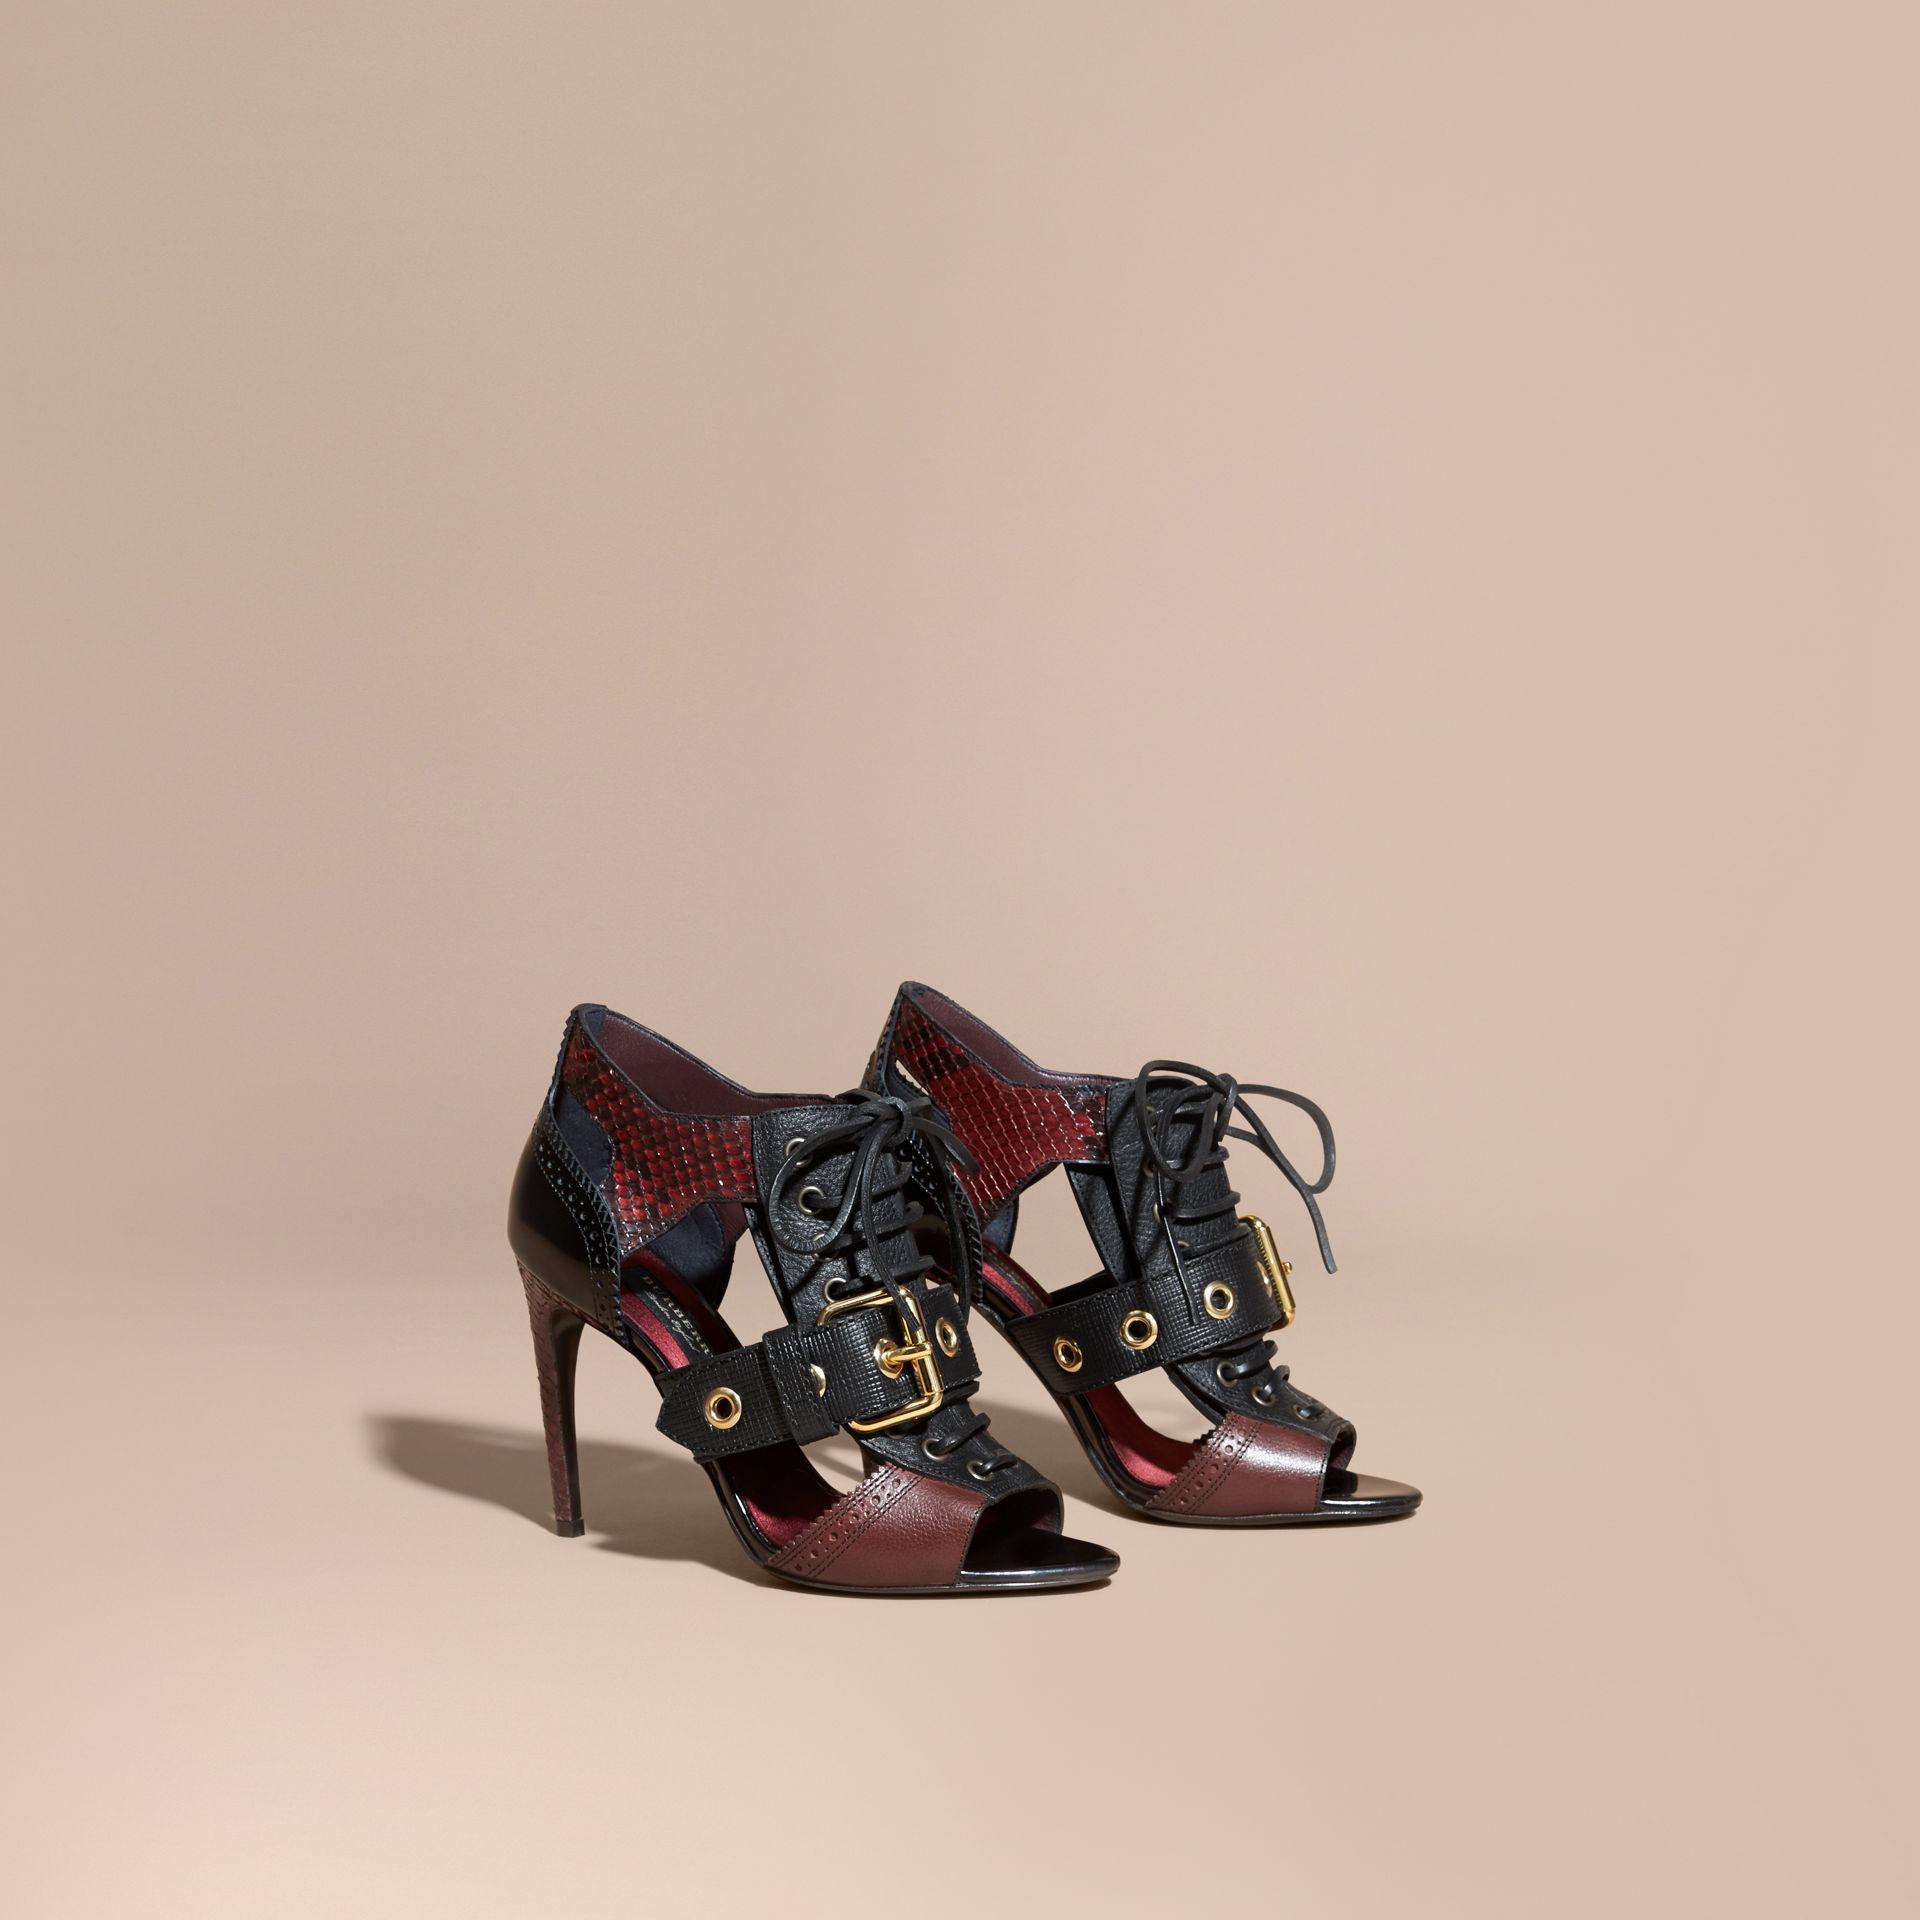 Buckle Detail Leather and Snakeskin Cut-out Ankle Boots Bordeaux - gallery image 1